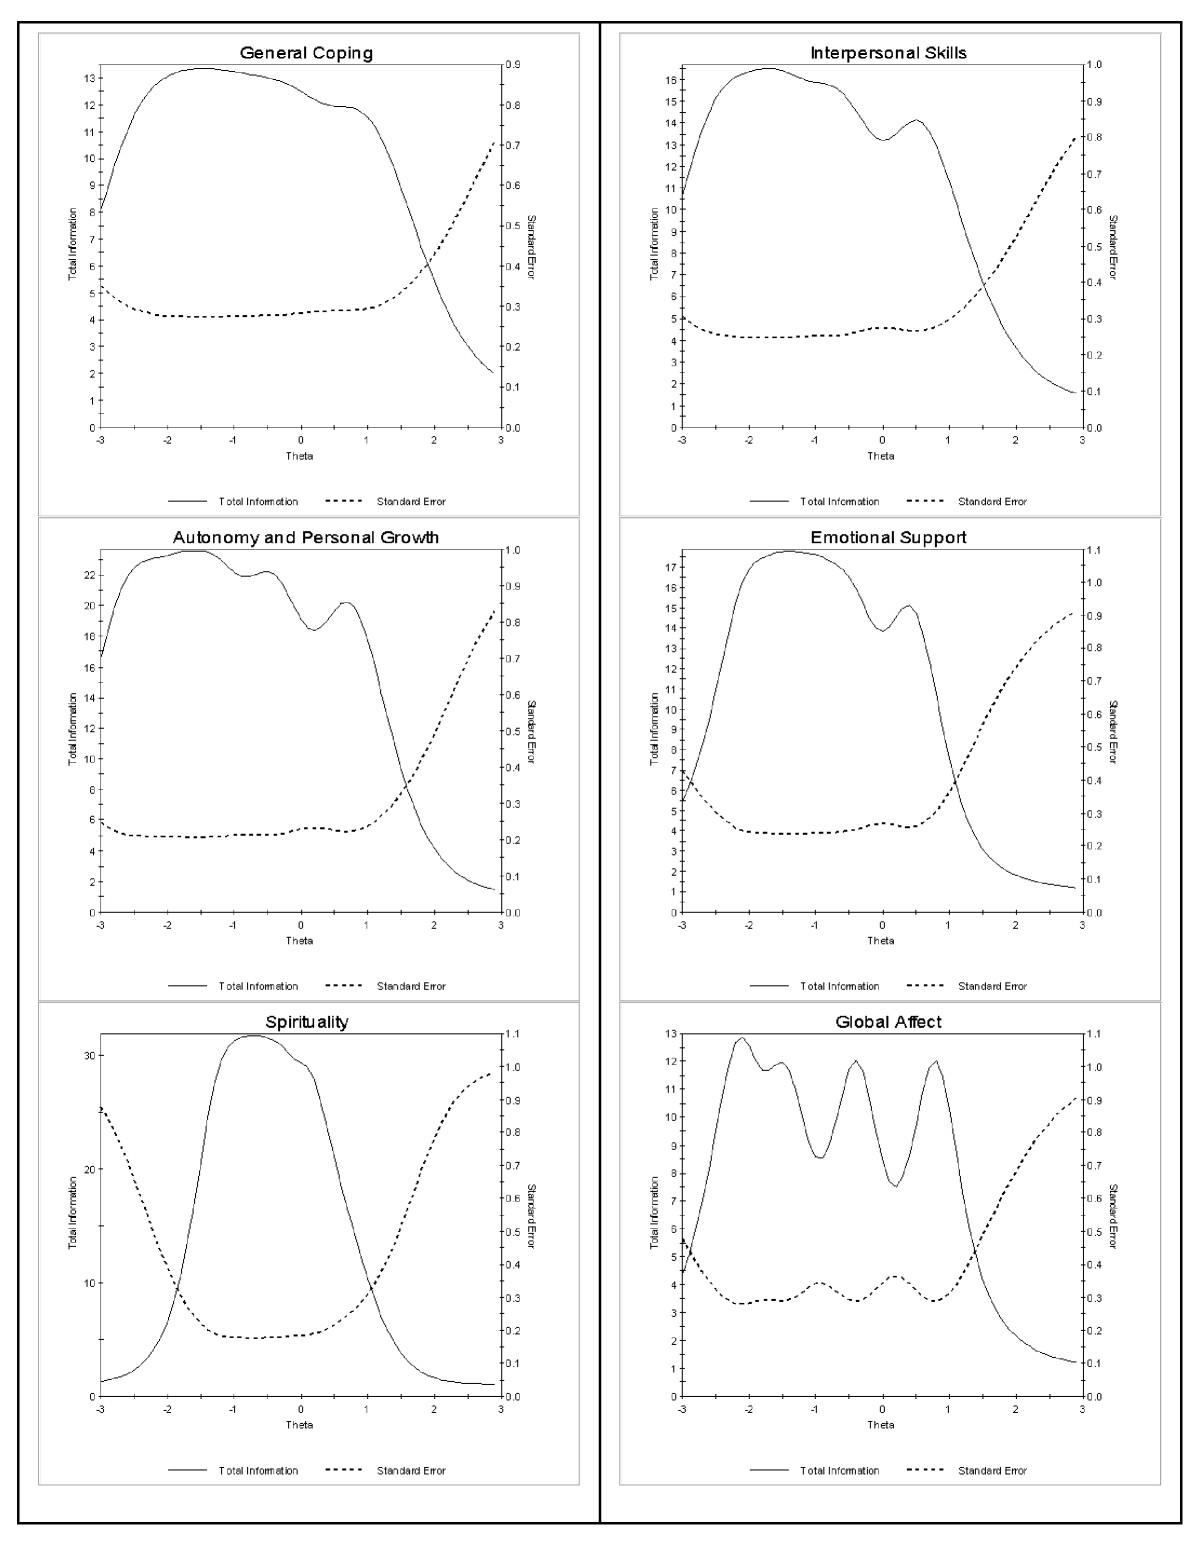 http://static-content.springer.com/image/art%3A10.1186%2F1477-7525-9-92/MediaObjects/12955_2011_Article_871_Fig1_HTML.jpg